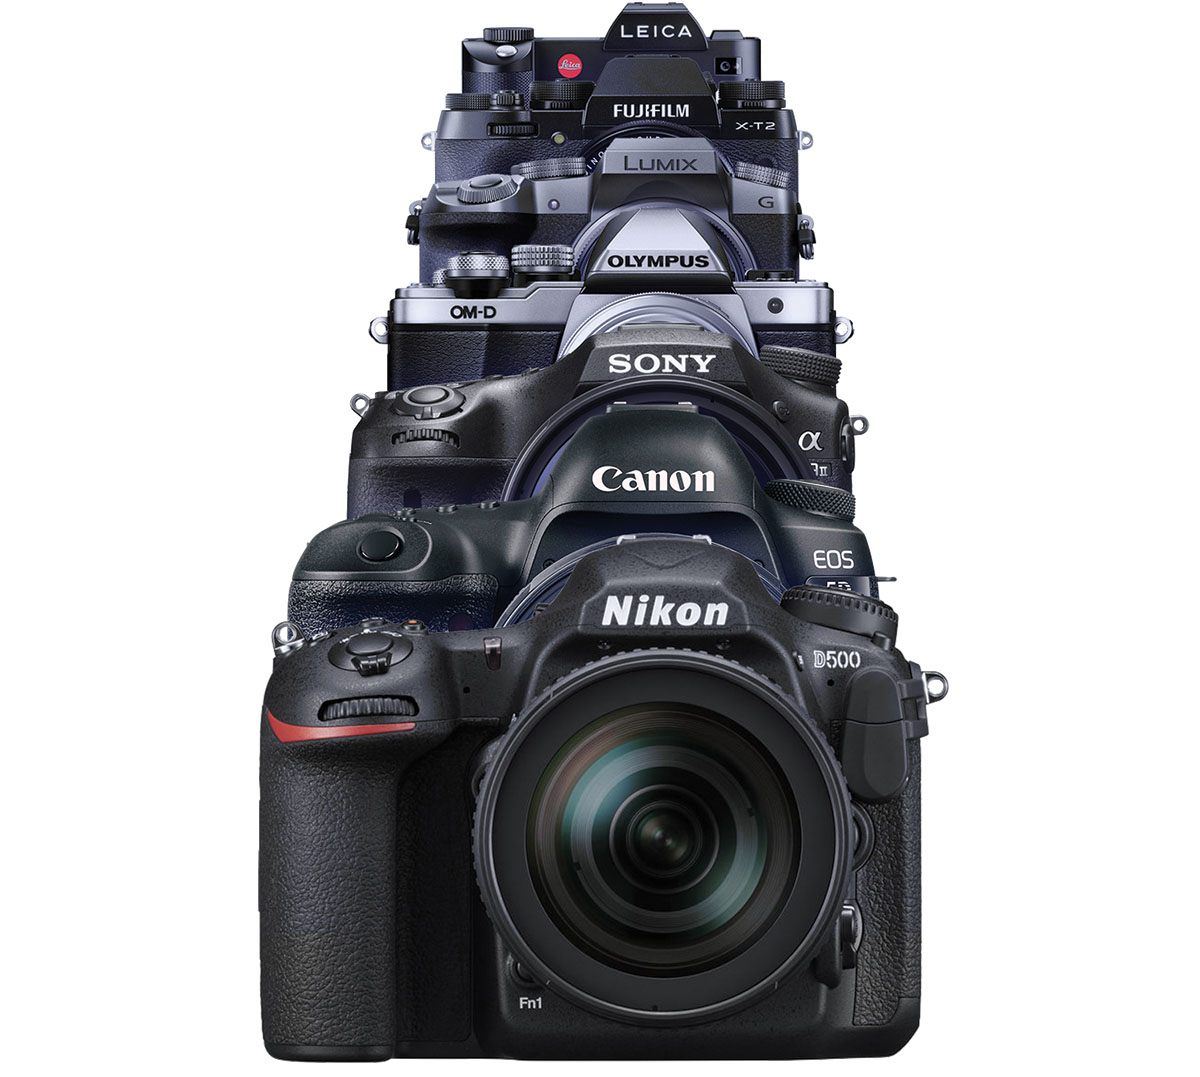 promo code 7928e 9e709 For The Photographer Choose Houston Camera Exchange for the best selection  of cameras, lenses, lighting, and more. Our knowledgeable staff will help  you ...